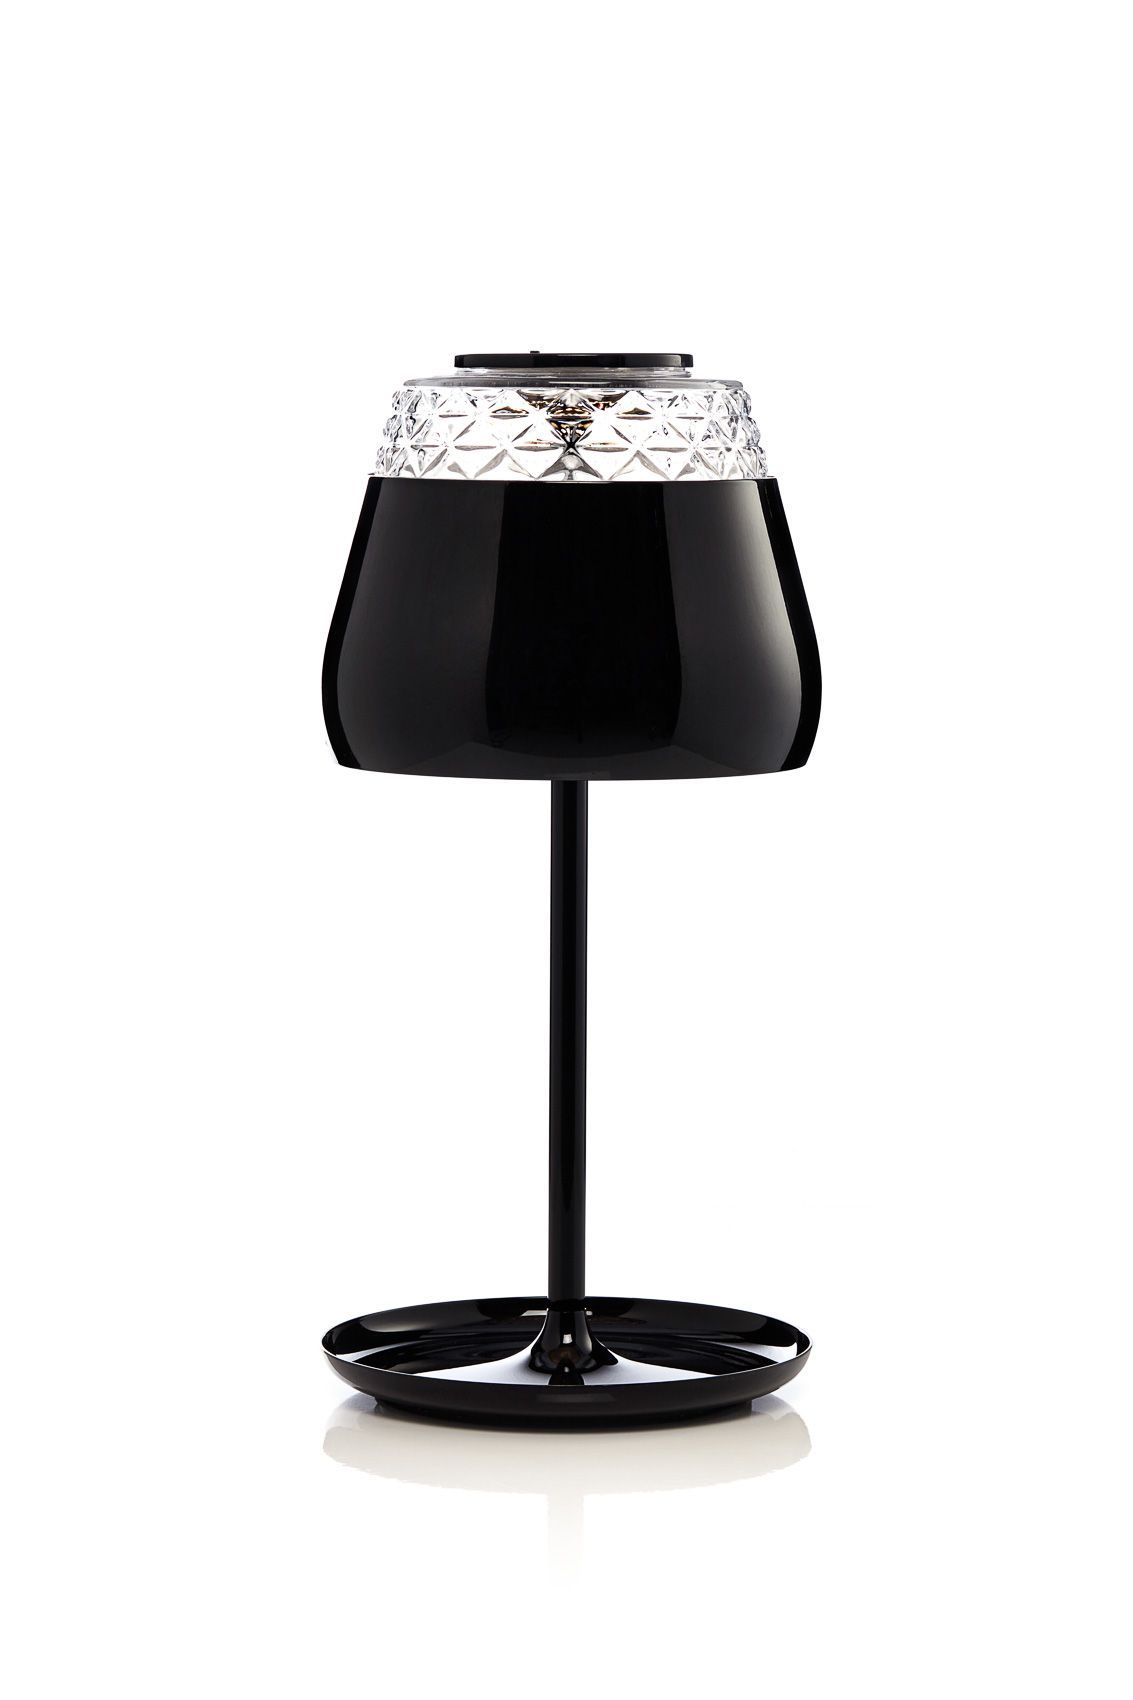 Marcel Wanders Verlichting Valentine Table Lamp By Marcel Wanders For Moooi If Lighting